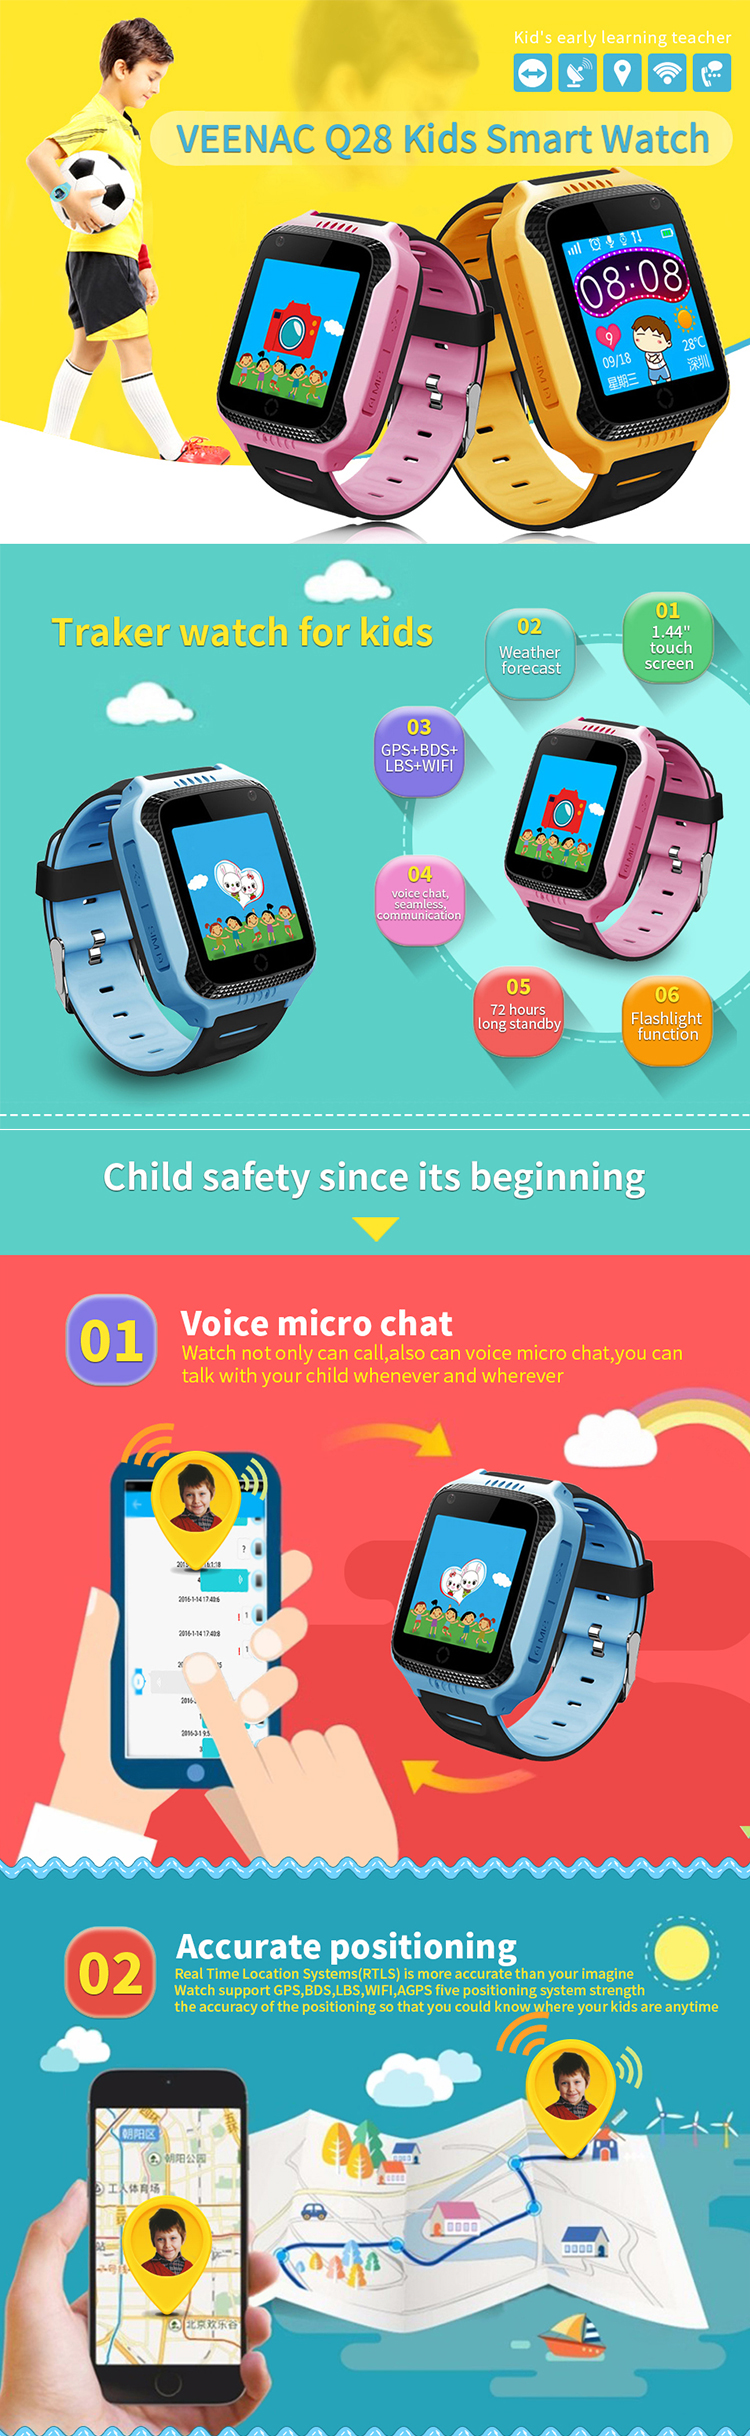 2018 Best Christmas gifts Children smart watch phone with GPS LBS tracking  watch SOS function kids smartwatch, View 2018 Christmas gifts, Karenm